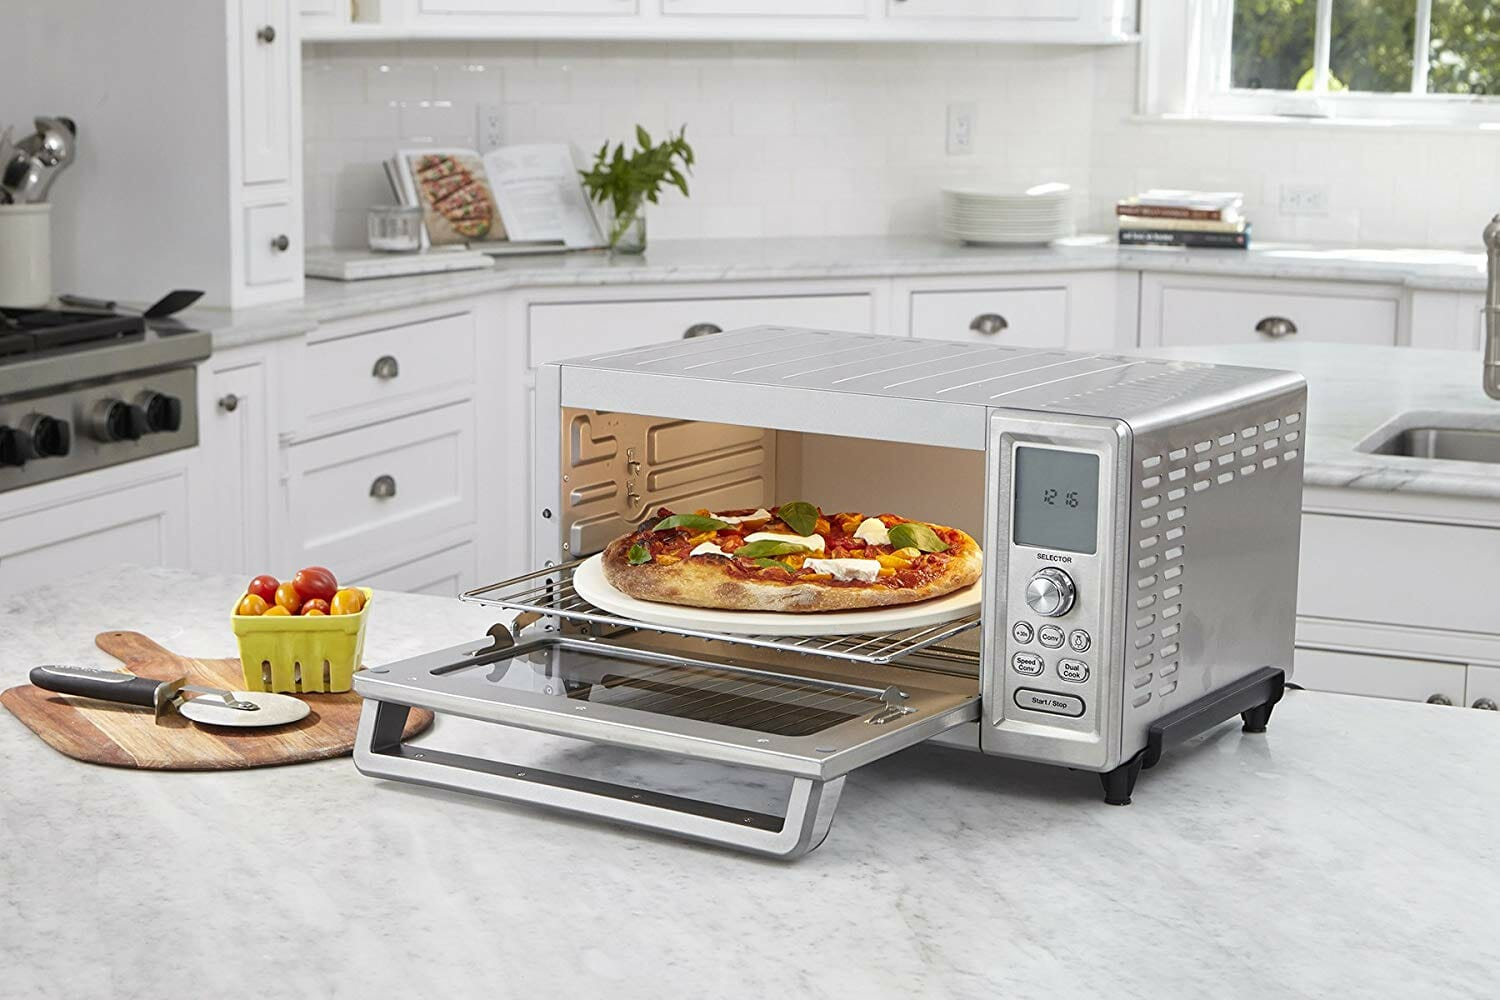 What is a Smart Oven